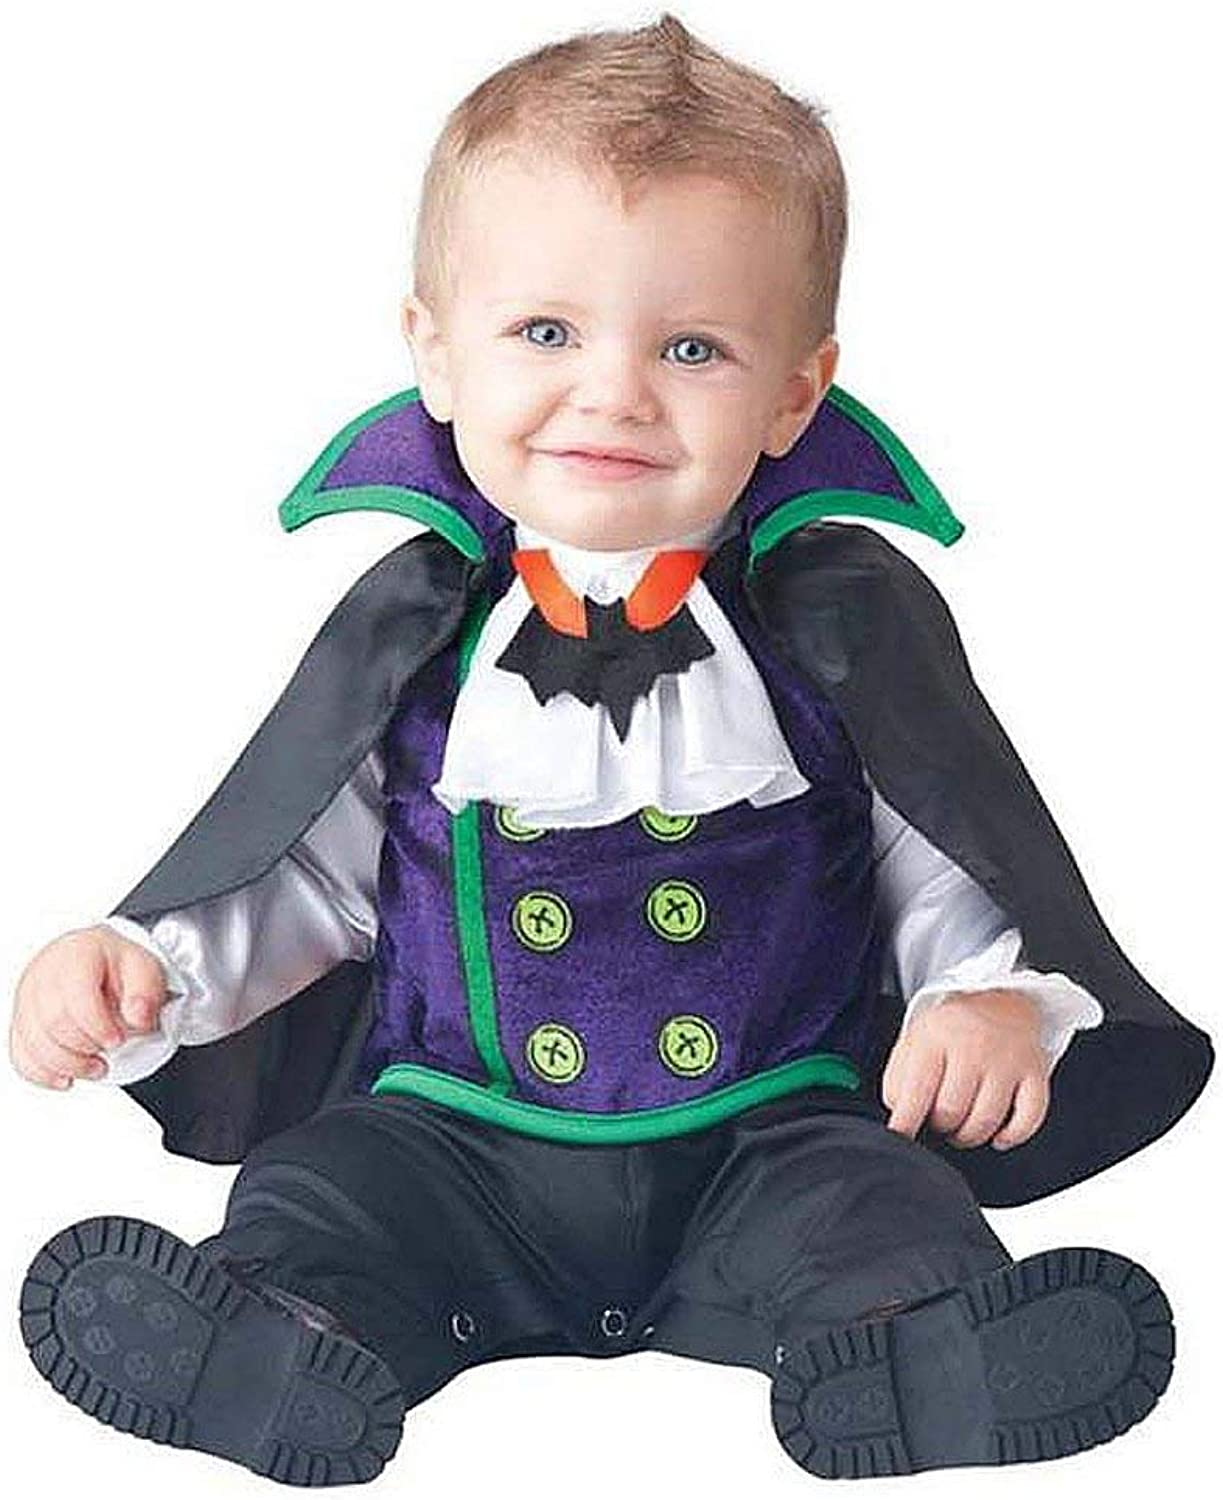 XXOO Toddler Baby Boys Infant Vampire Halloween Costume Outfits